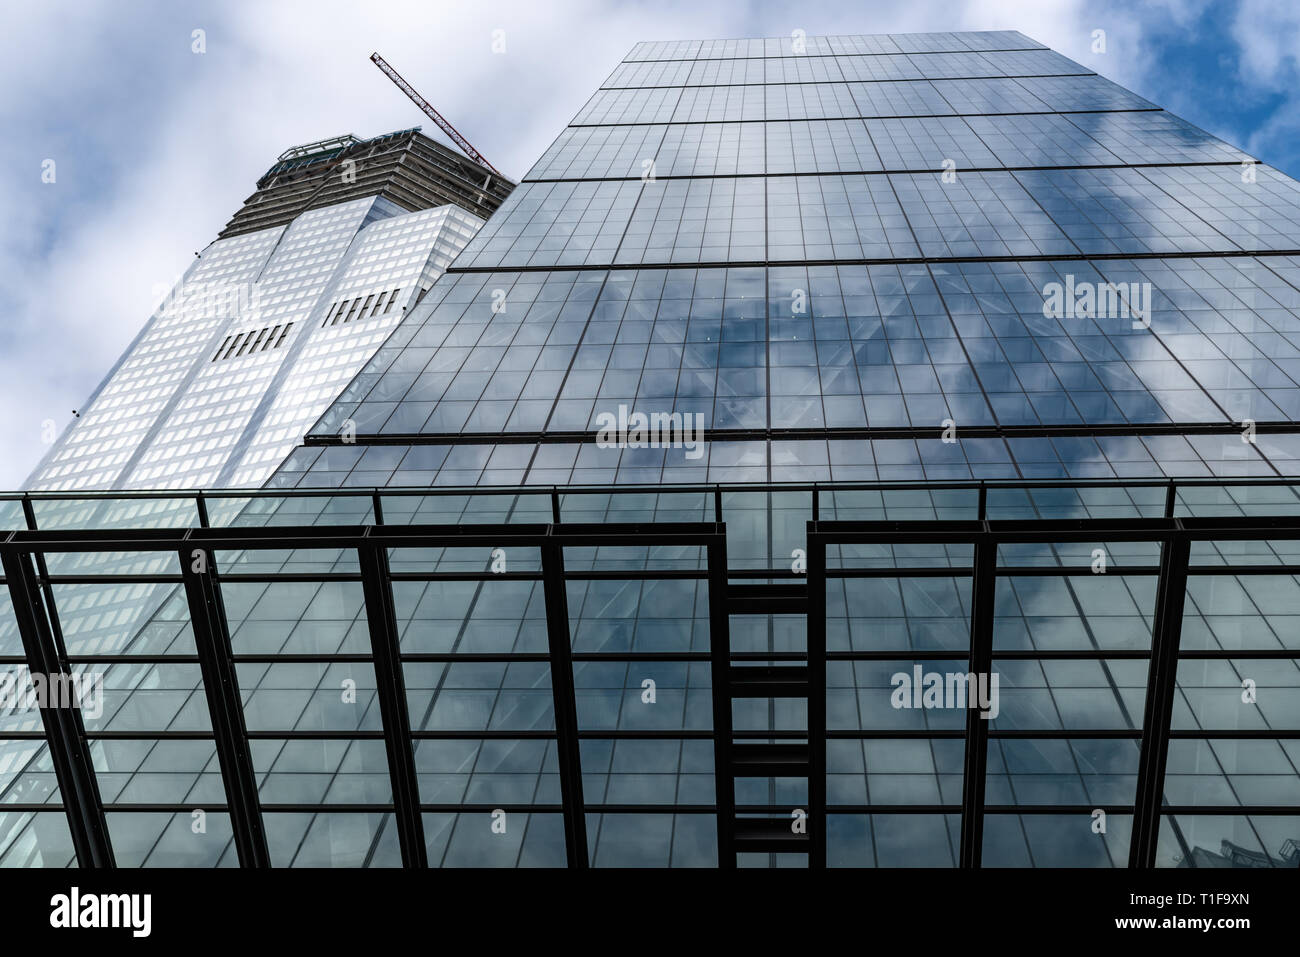 The sloping south face of the 'Cheesegrater' (Leadenhall Building)  and new 100 Bishopsgate building. - Stock Image